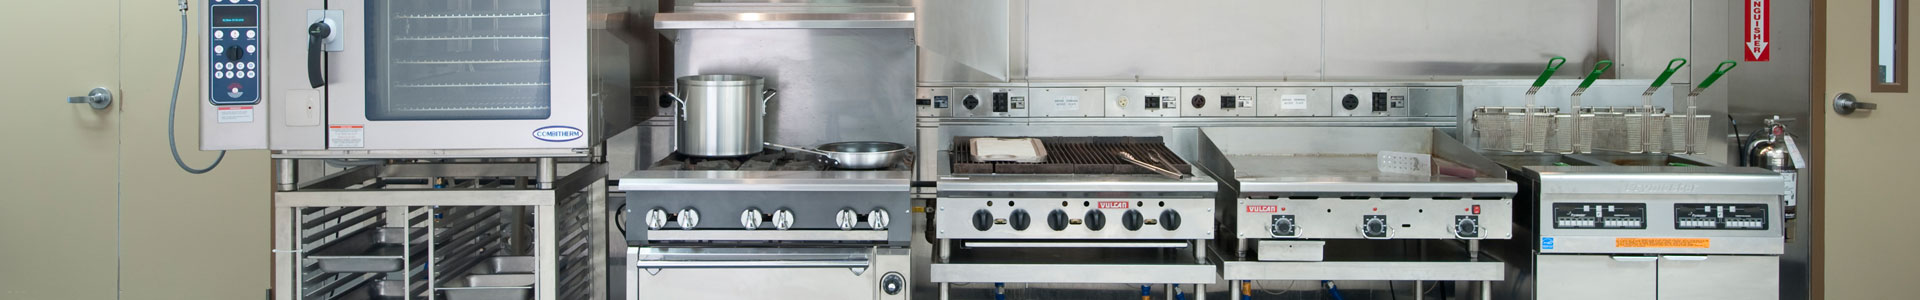 Commercial Kitchen Appliances New and Reconditioned by Anglia Catering Equipment-Banner